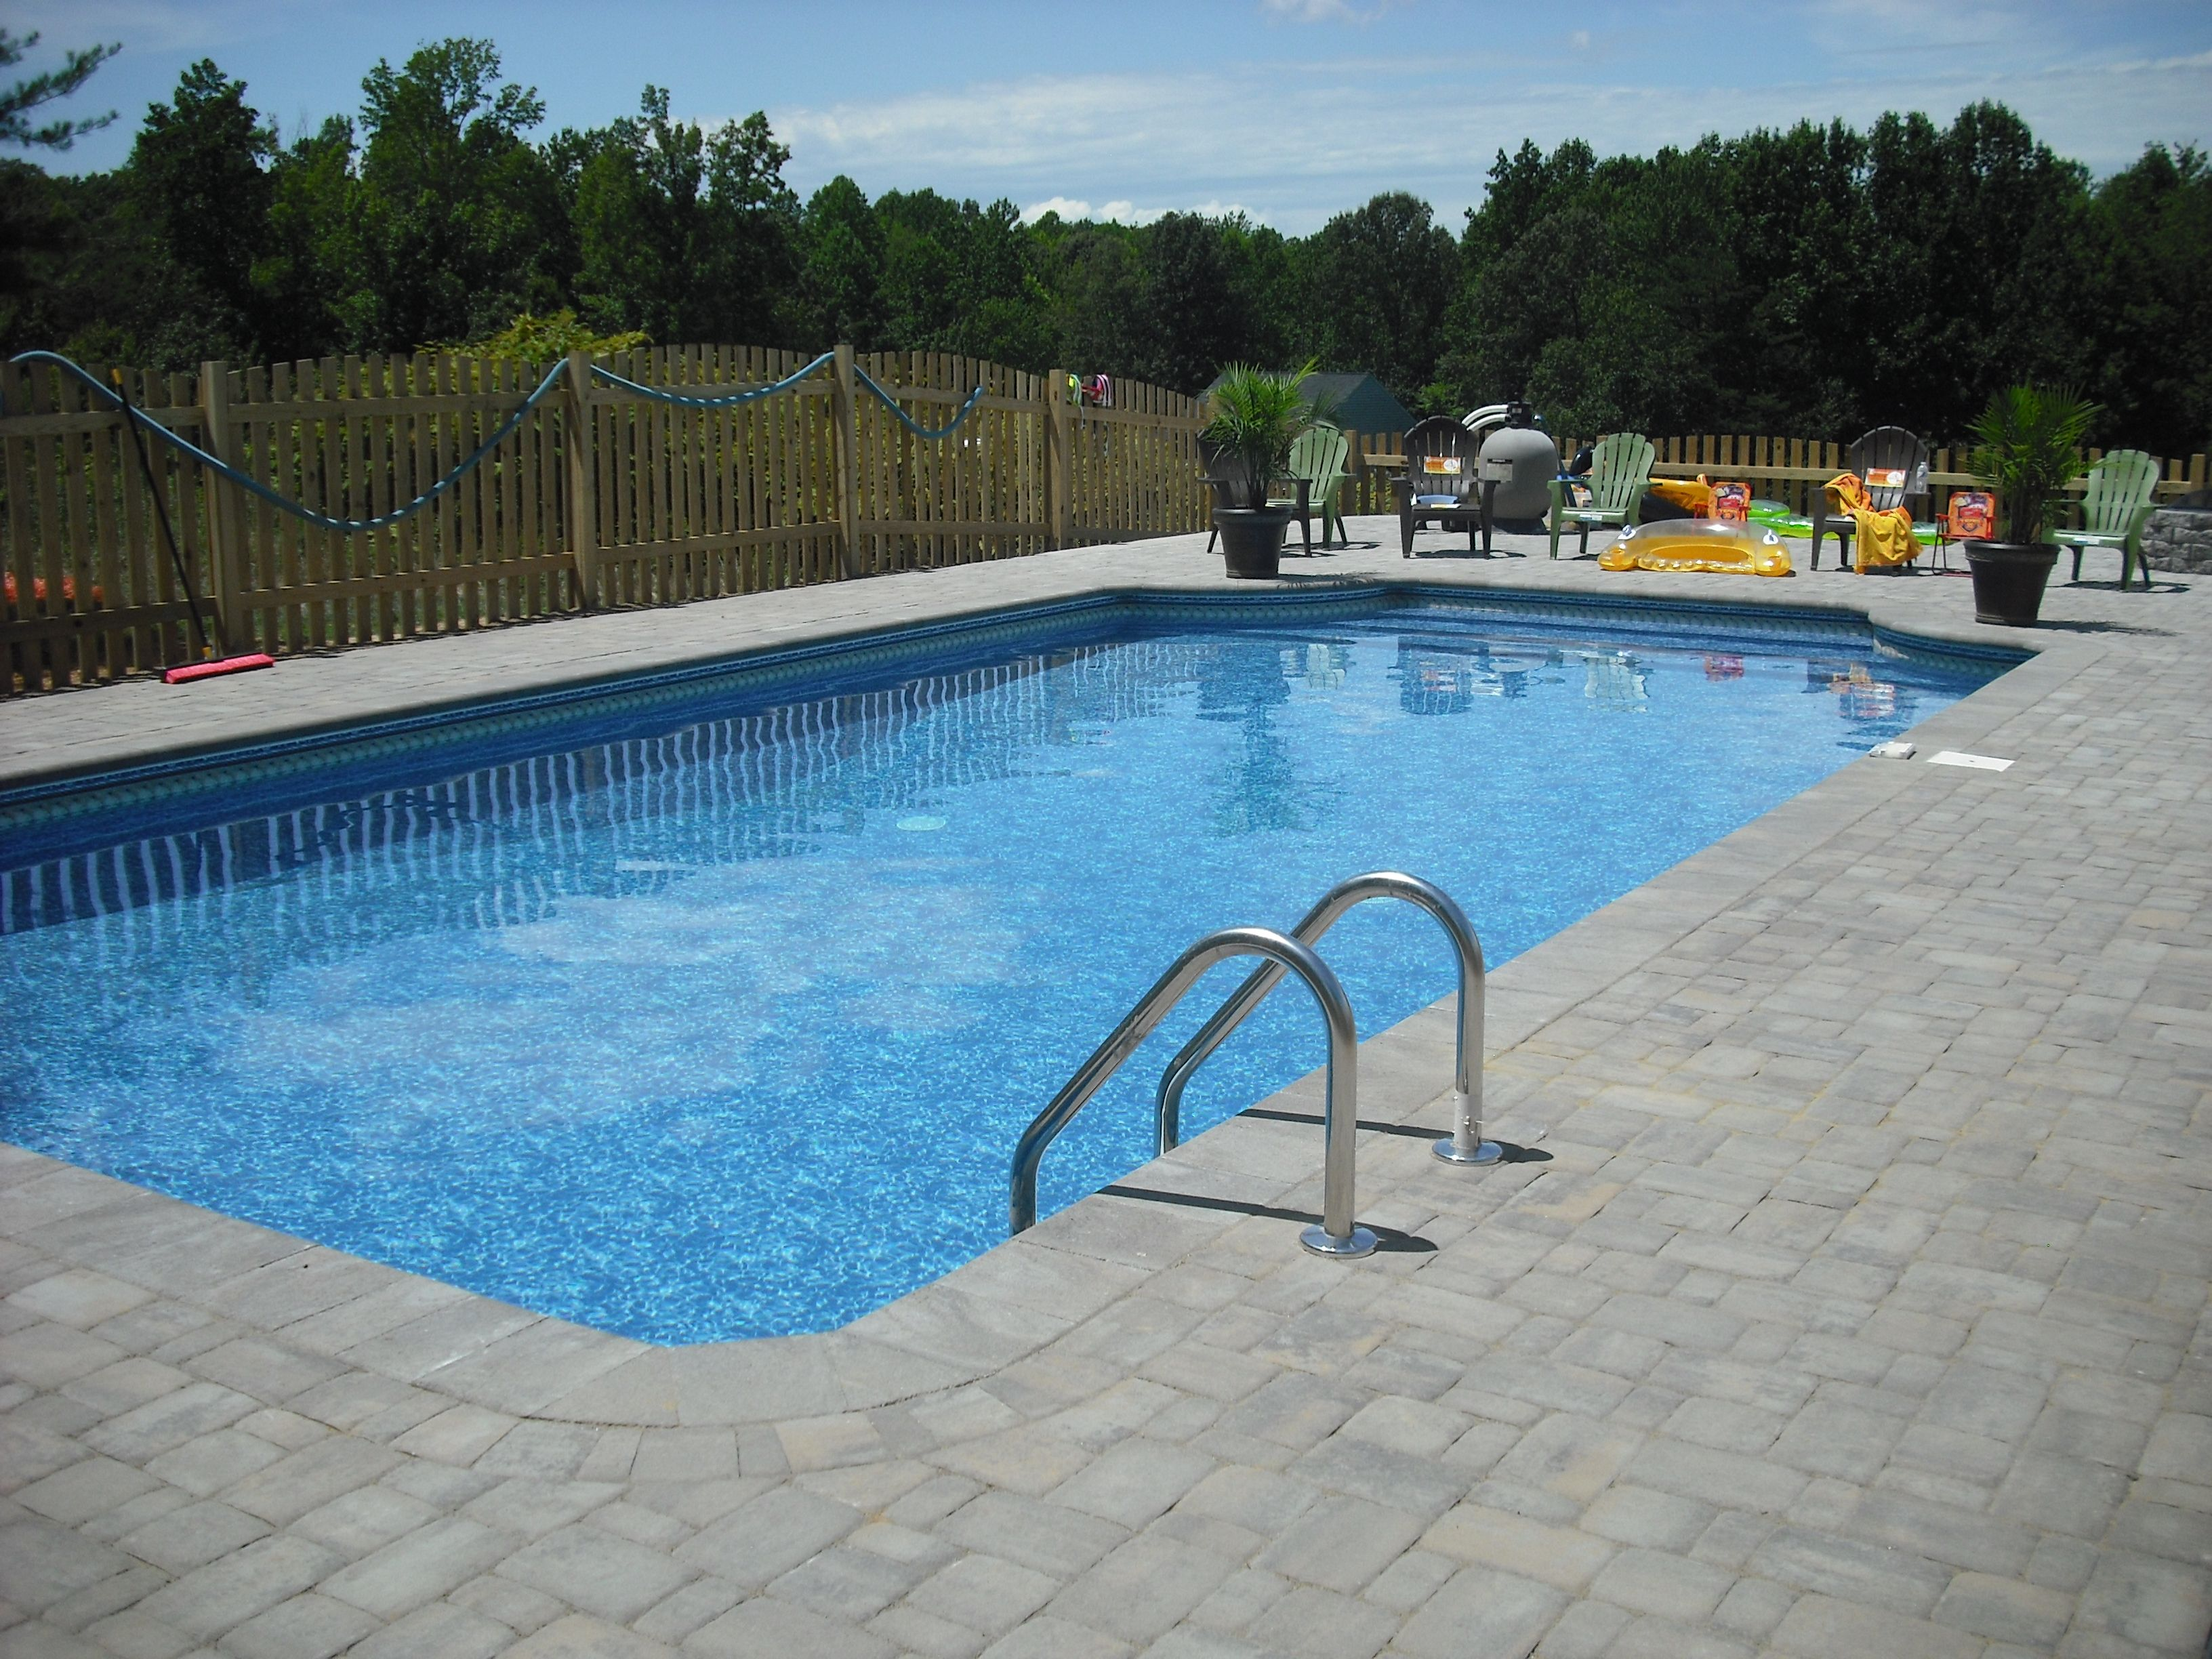 Pool Paver Ideas pool deck by unilock with richcliff paver and steps Pool Pavers Brick Paver Skirting Around Pool In Fredericksburg Virginia